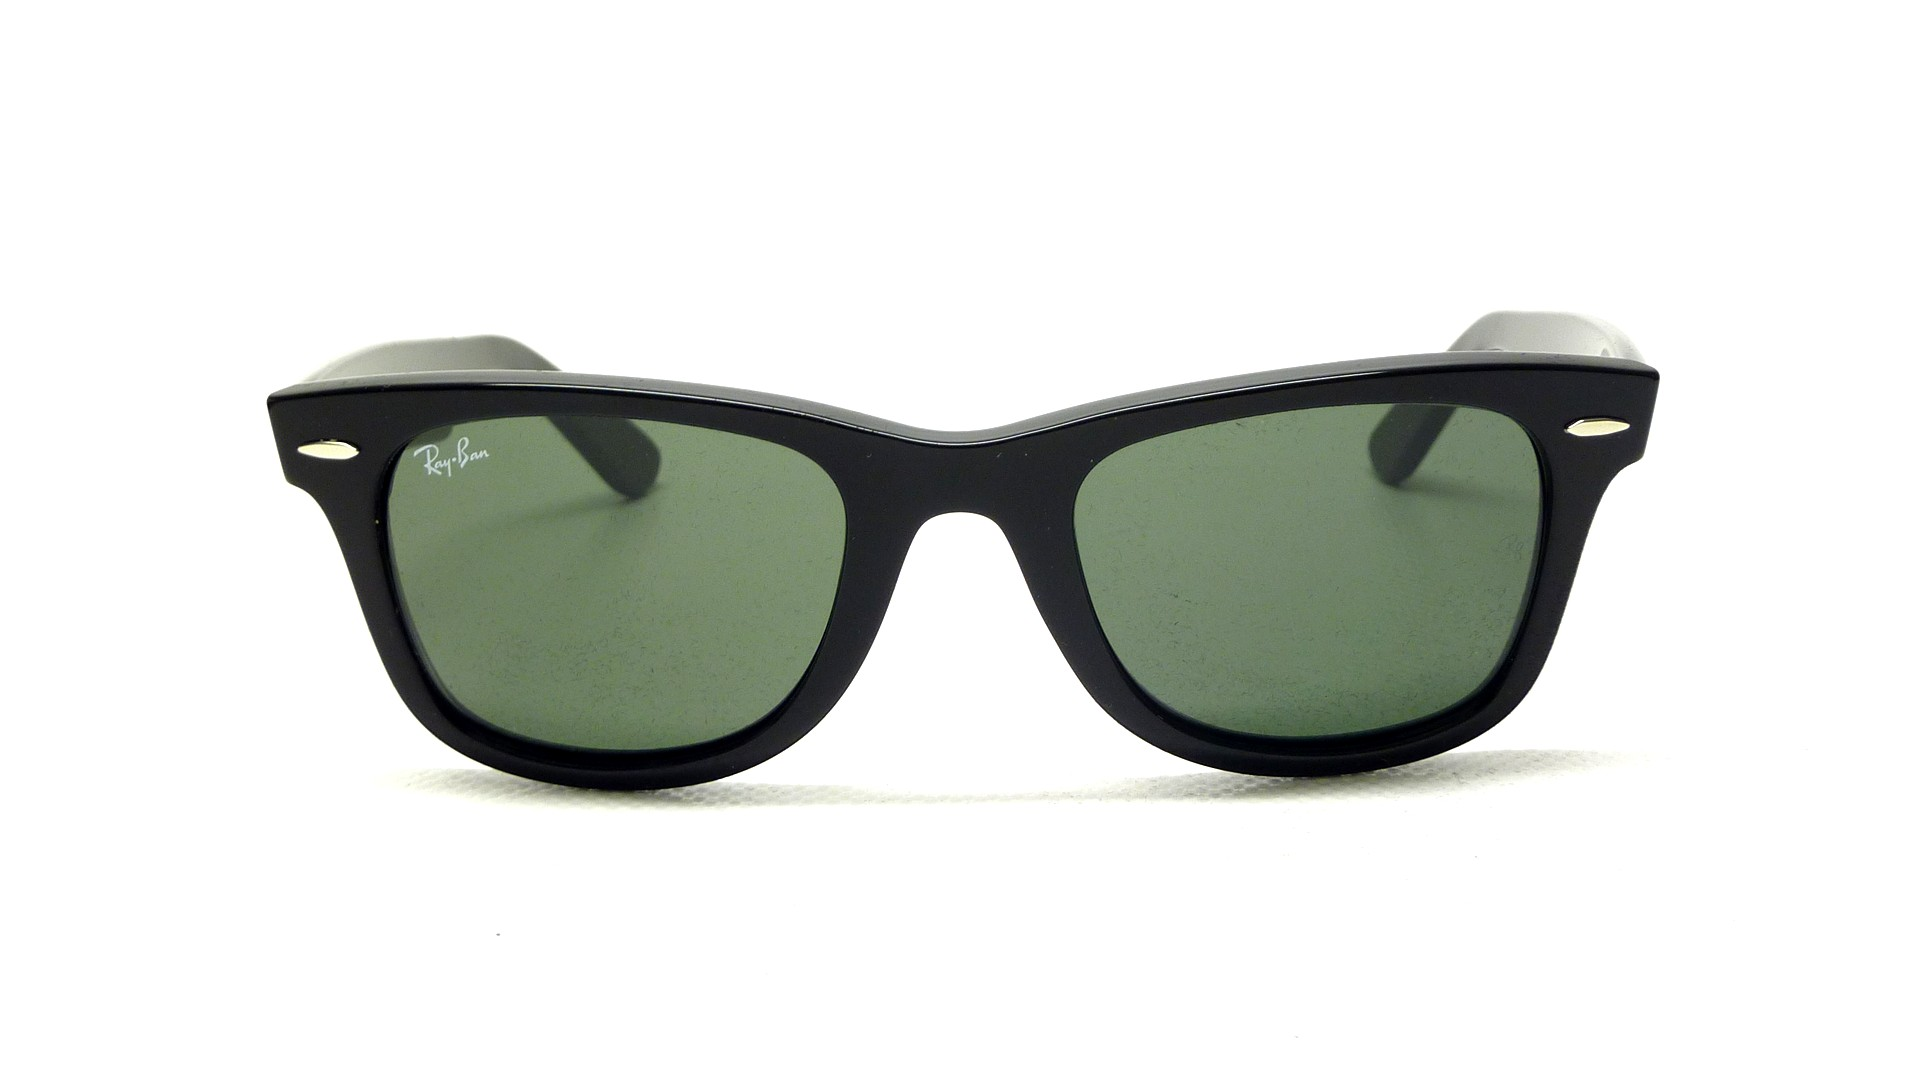 cdc1d10fd7d1 Ray-Ban Original Wayfarer Classic Black RB2140 901 54-18